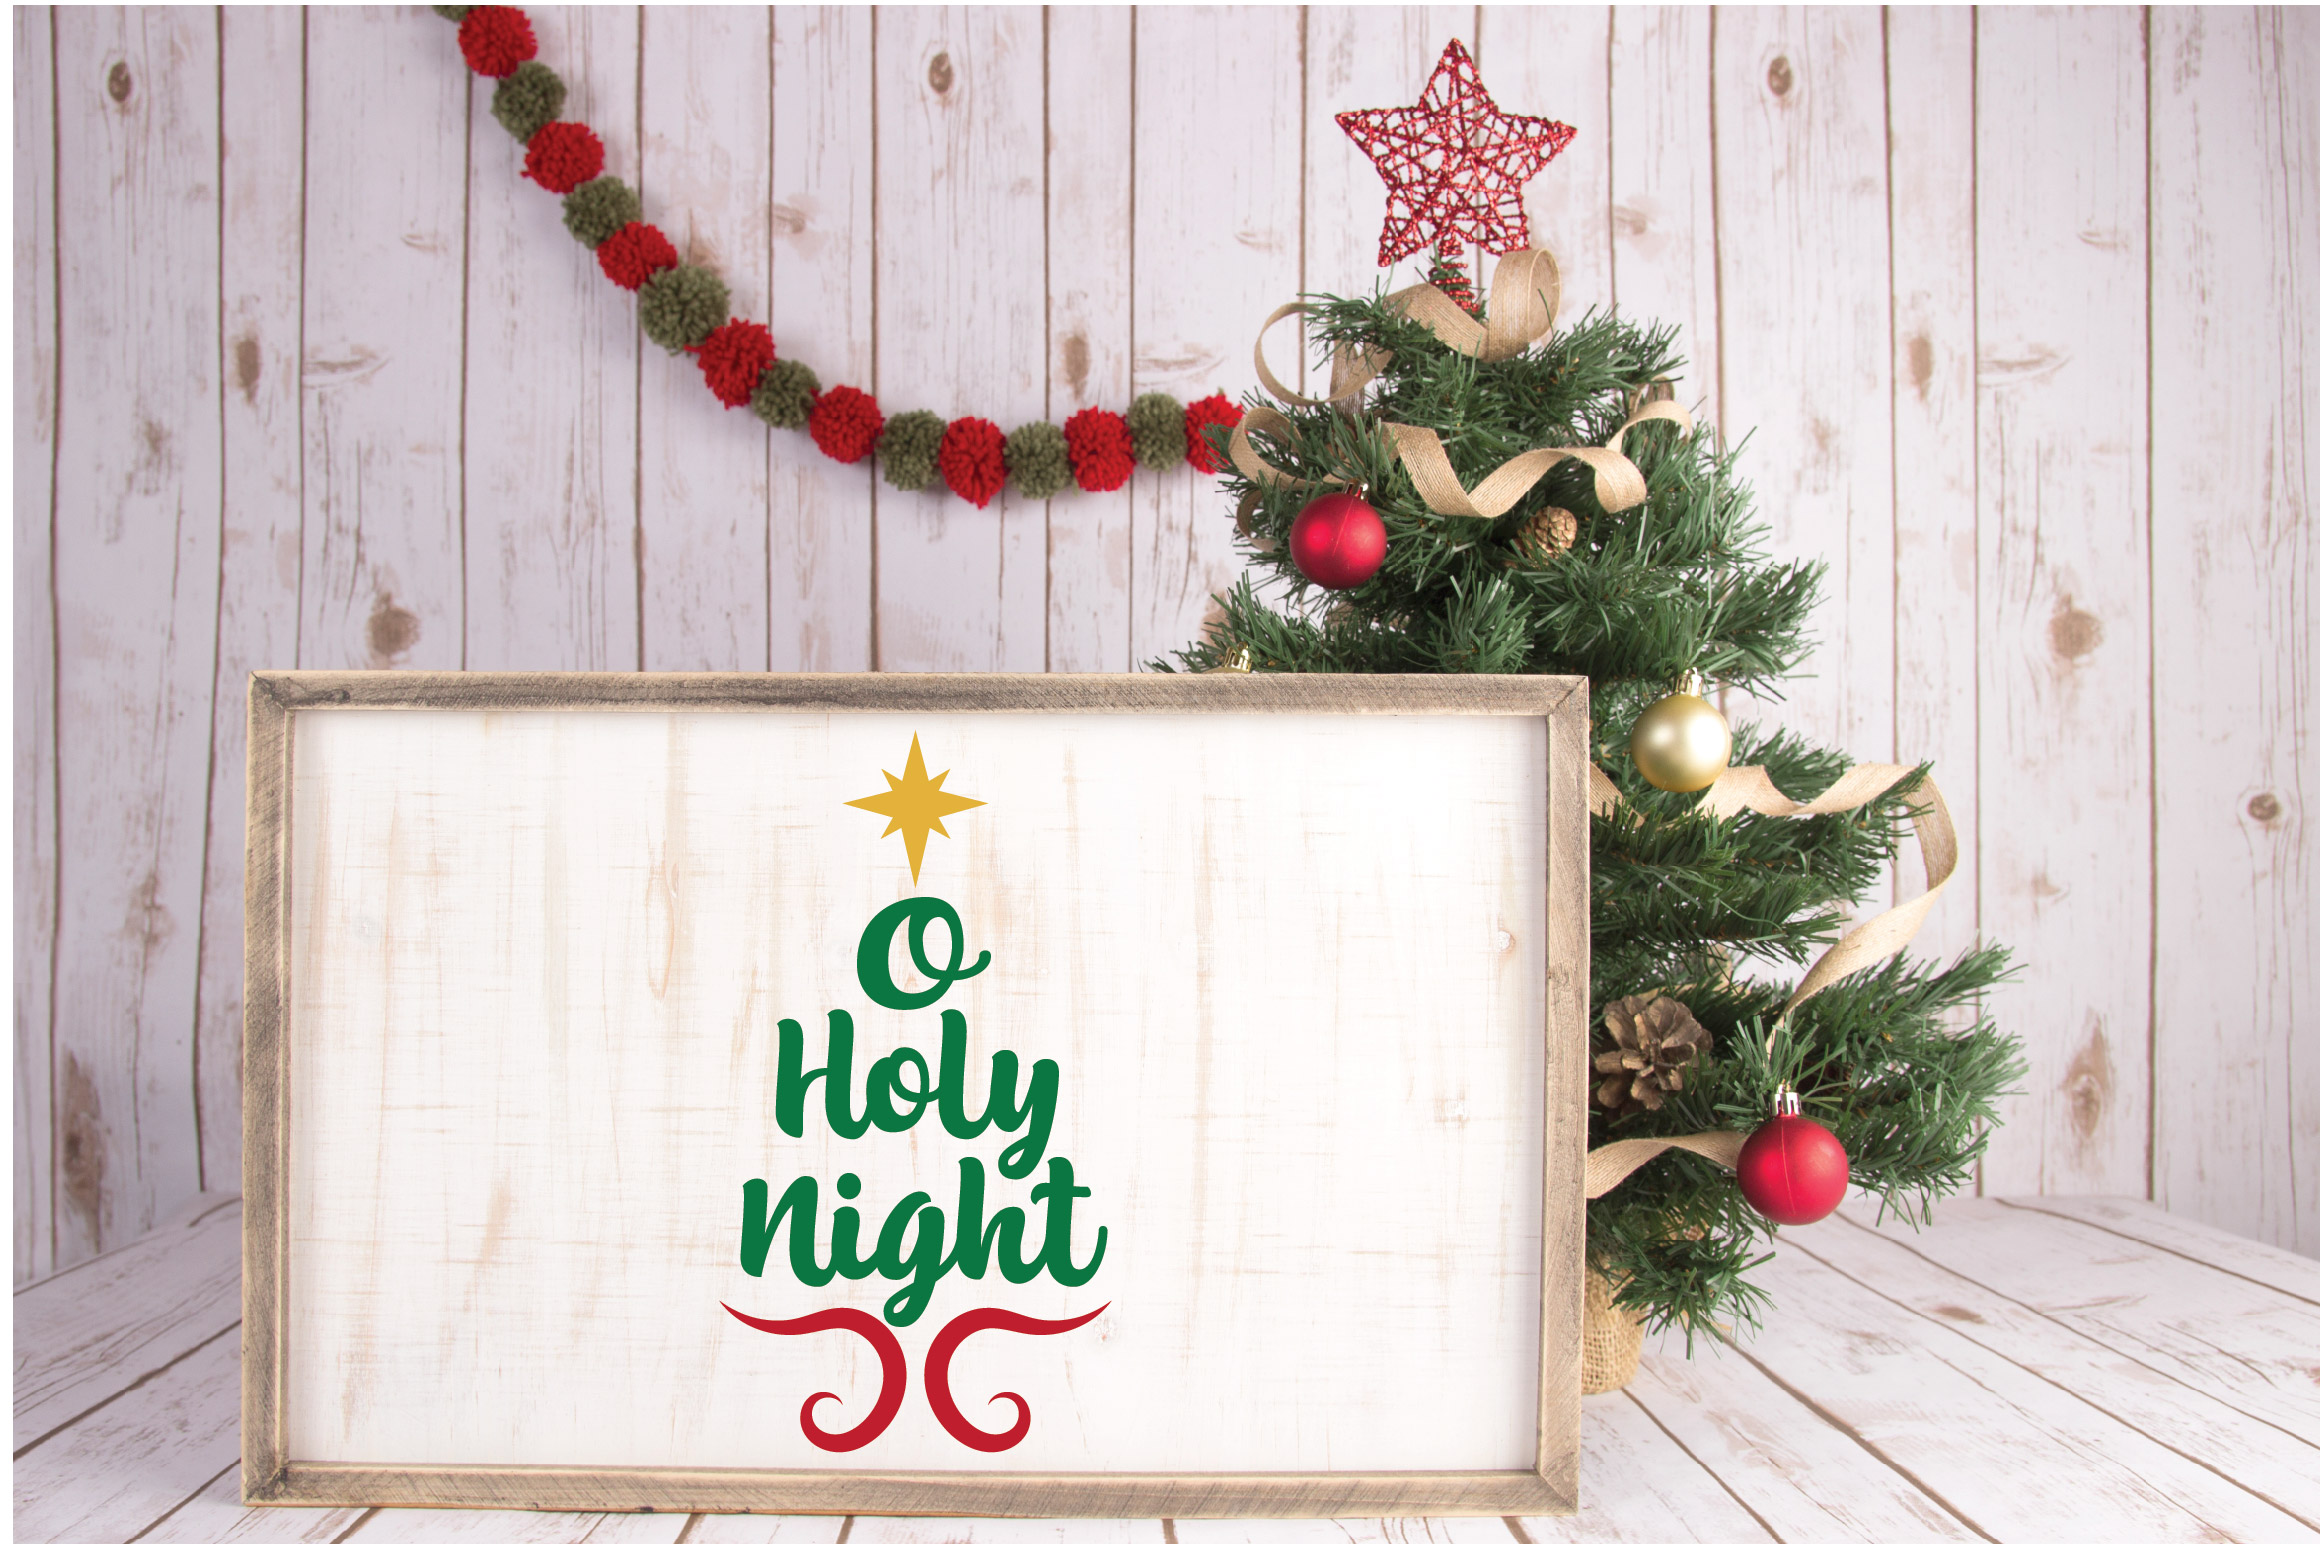 O Holy Night SVG Cut File - Christmas SVG - DXF - PNG - EPS example image 6